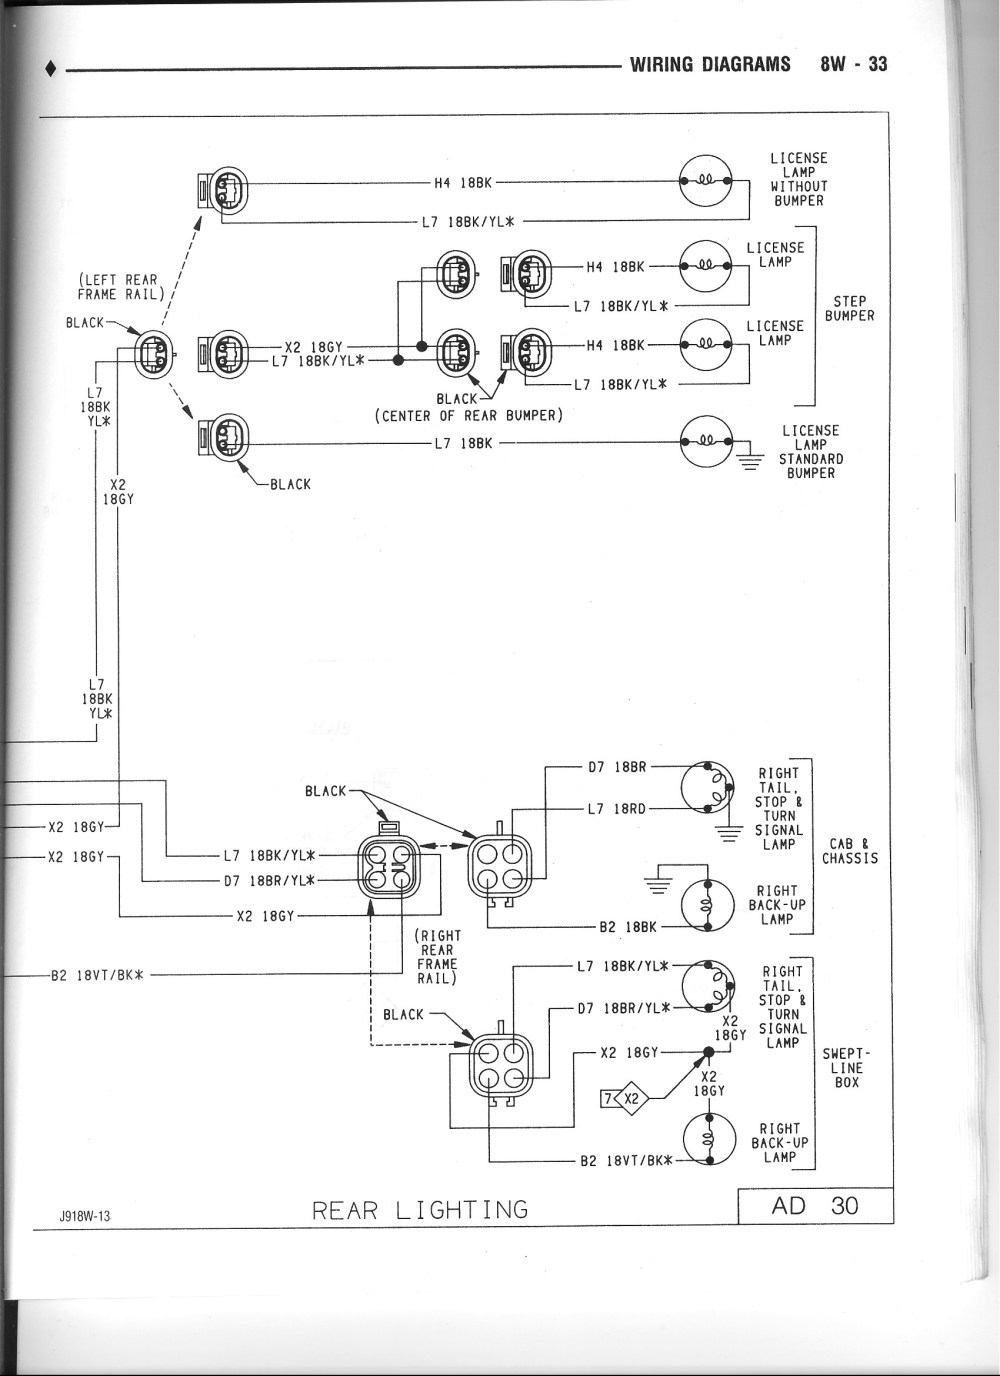 medium resolution of dodge dakota tail light wiring harness wiring diagram load 1994 dodge dakota tail light wiring diagram 1994 dodge dakota tail light wiring diagram